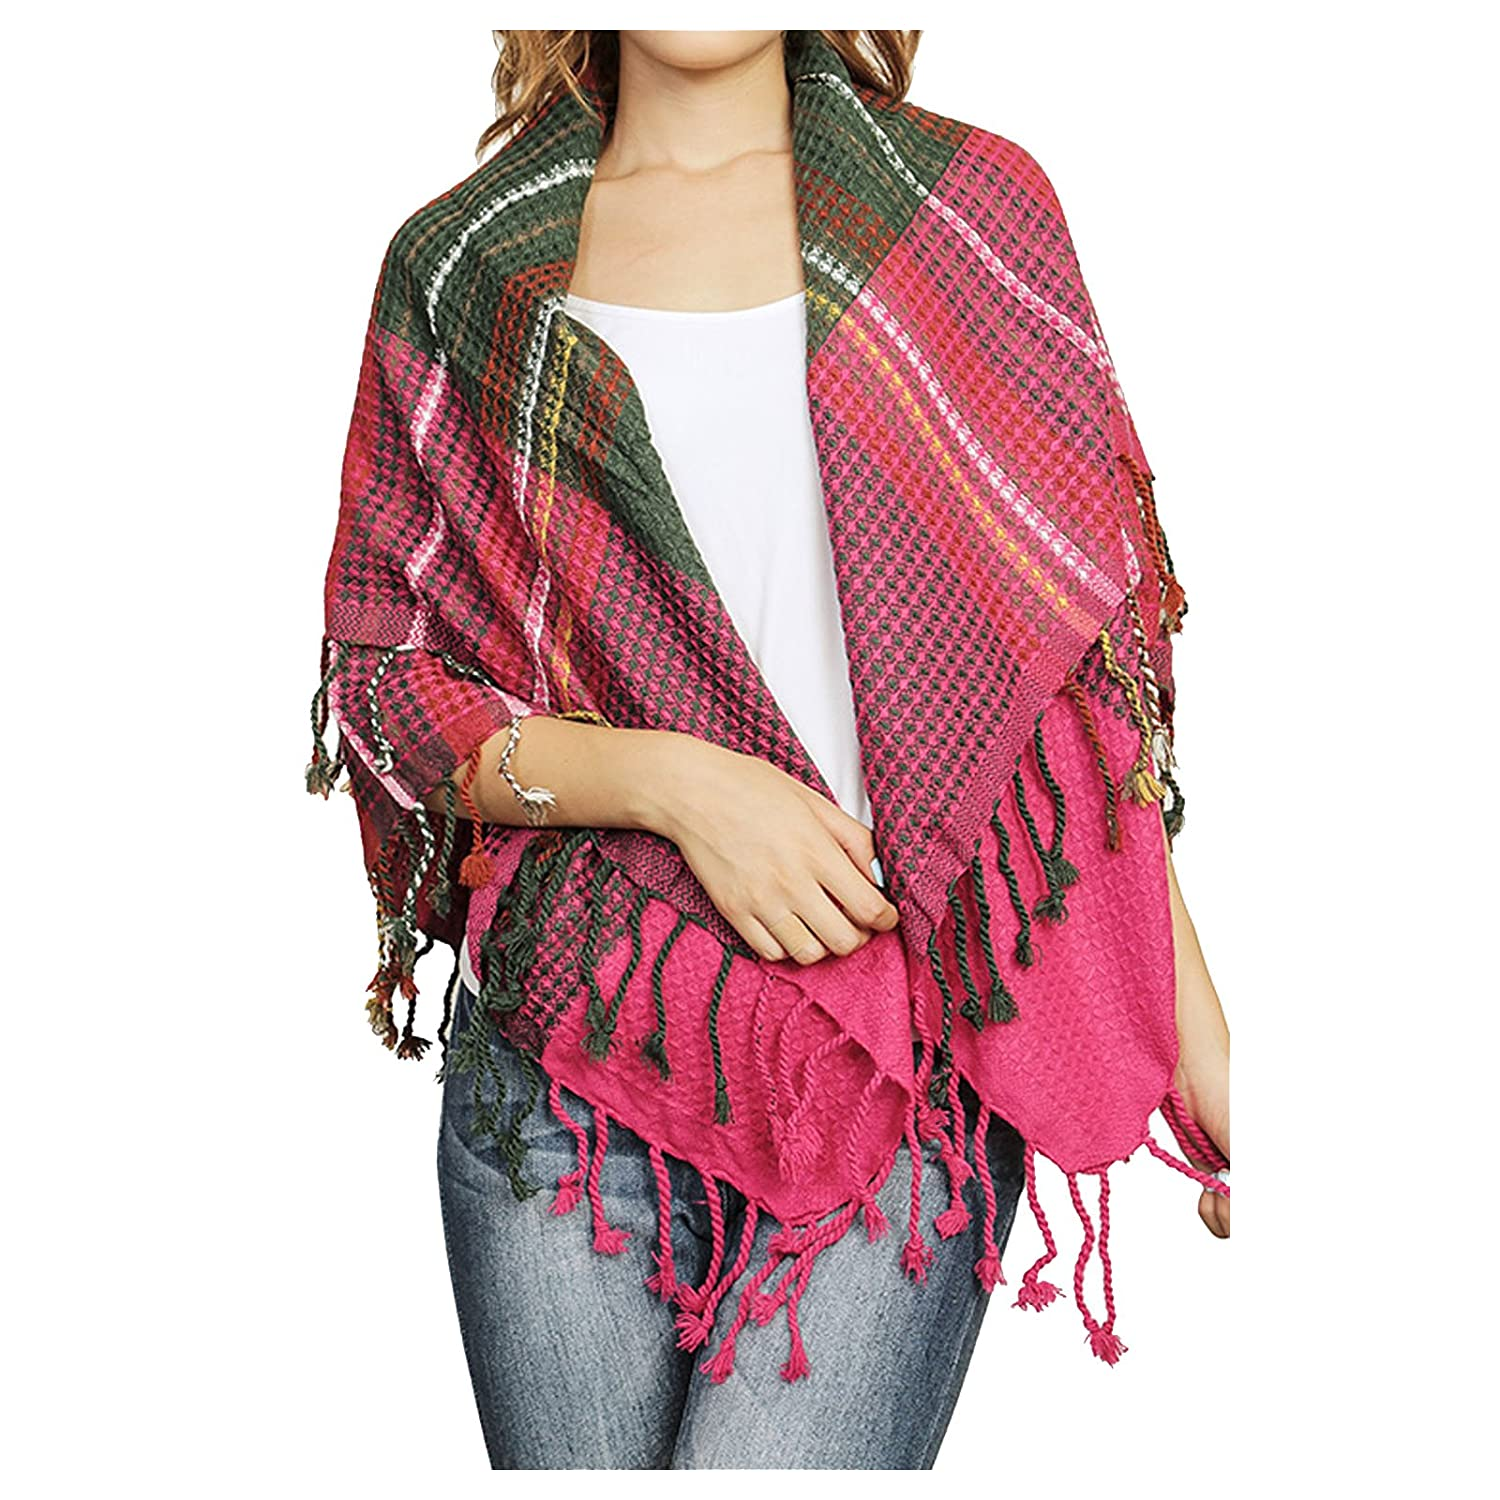 Women's Multi Color Waffle Knit Fringed Scarf